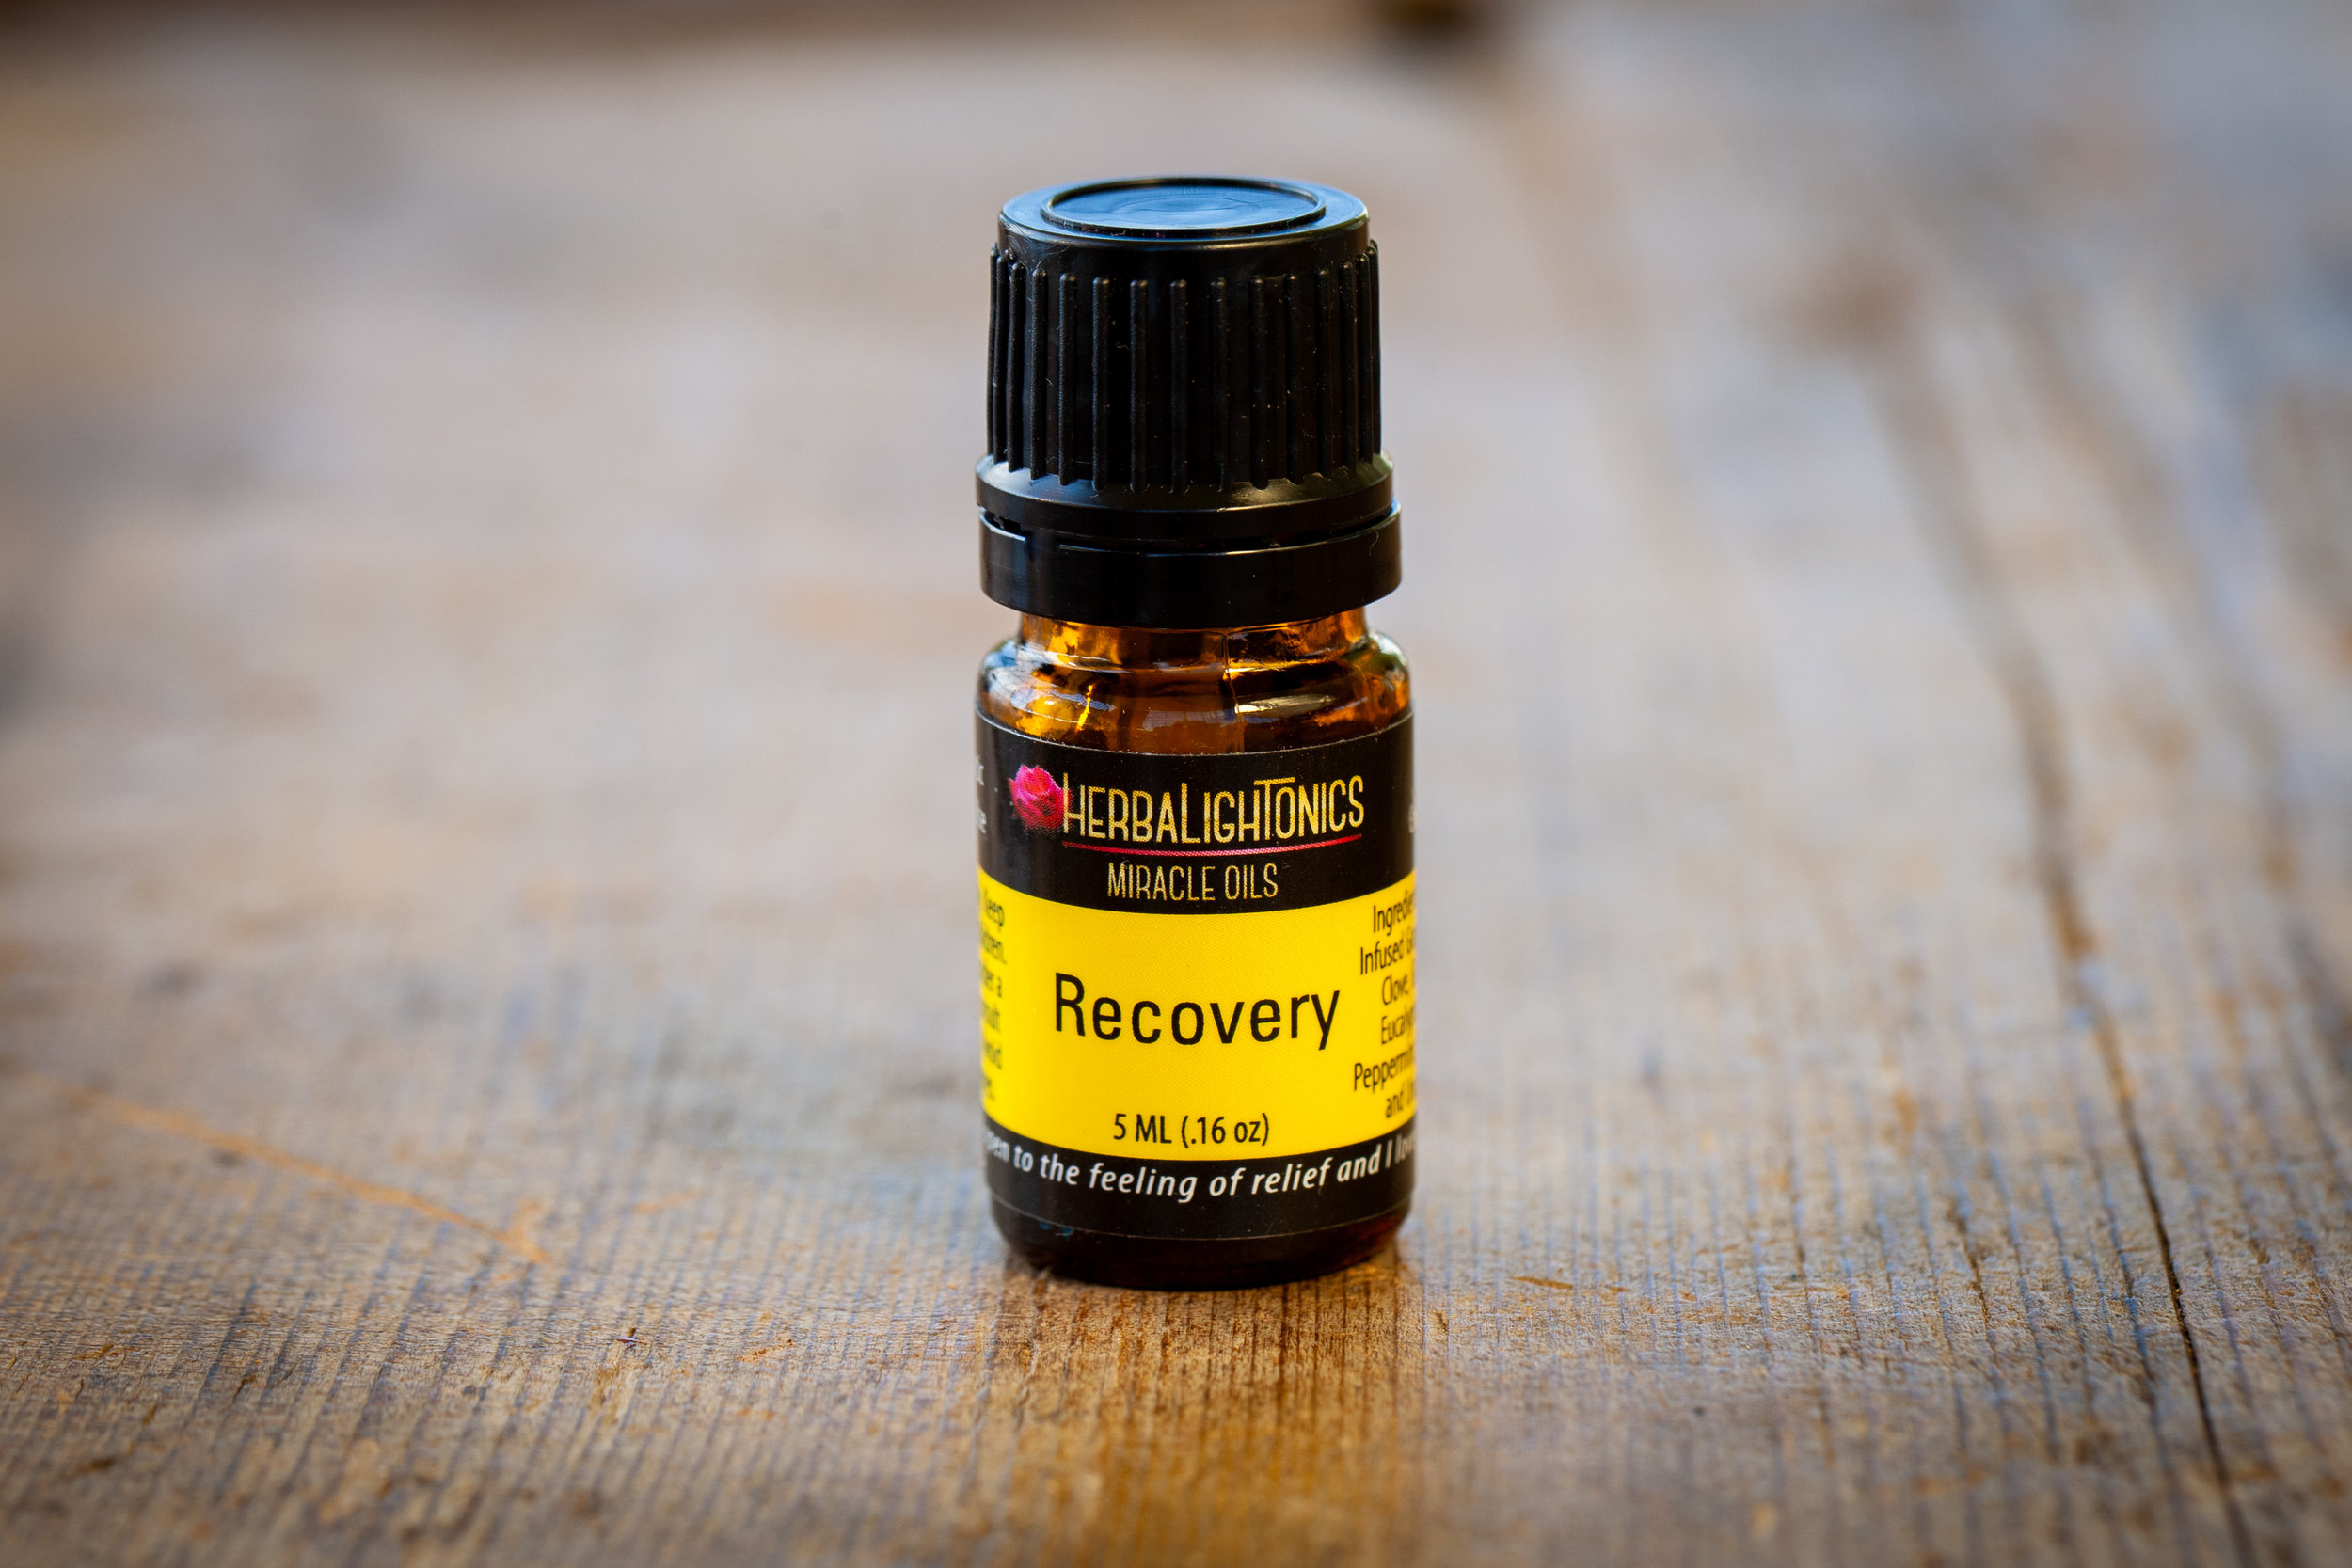 Recovery Miracle Oil